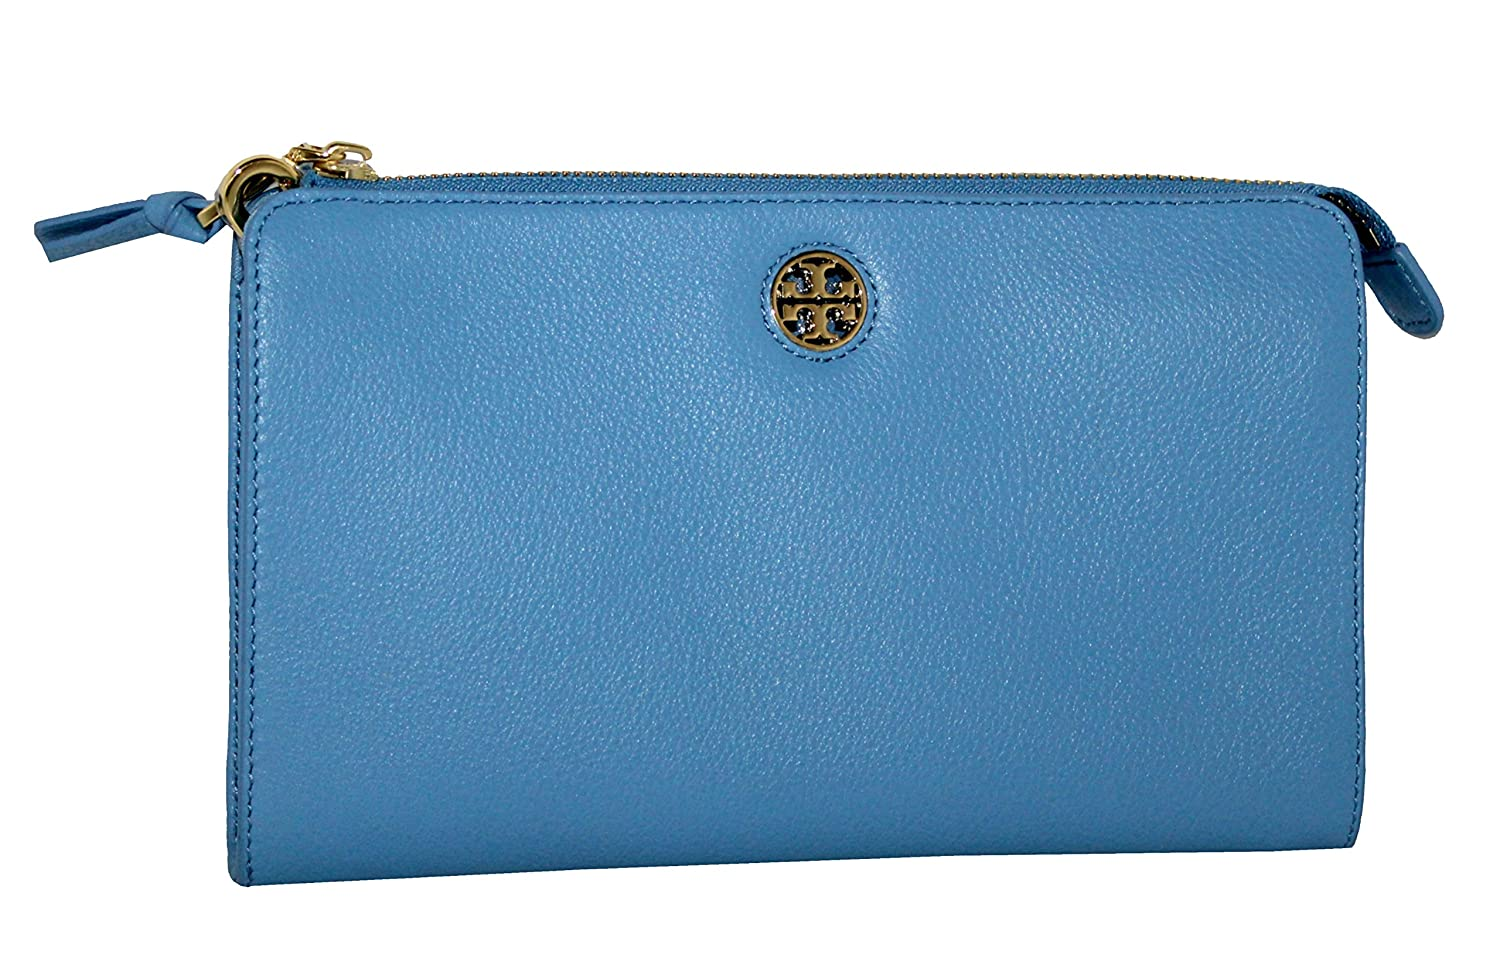 4eac4600af6a Amazon.com  TORY BURCH BRODY PEBBLED LEATHER WALLET CROSSBODY WOMEN S BAG   Shoes